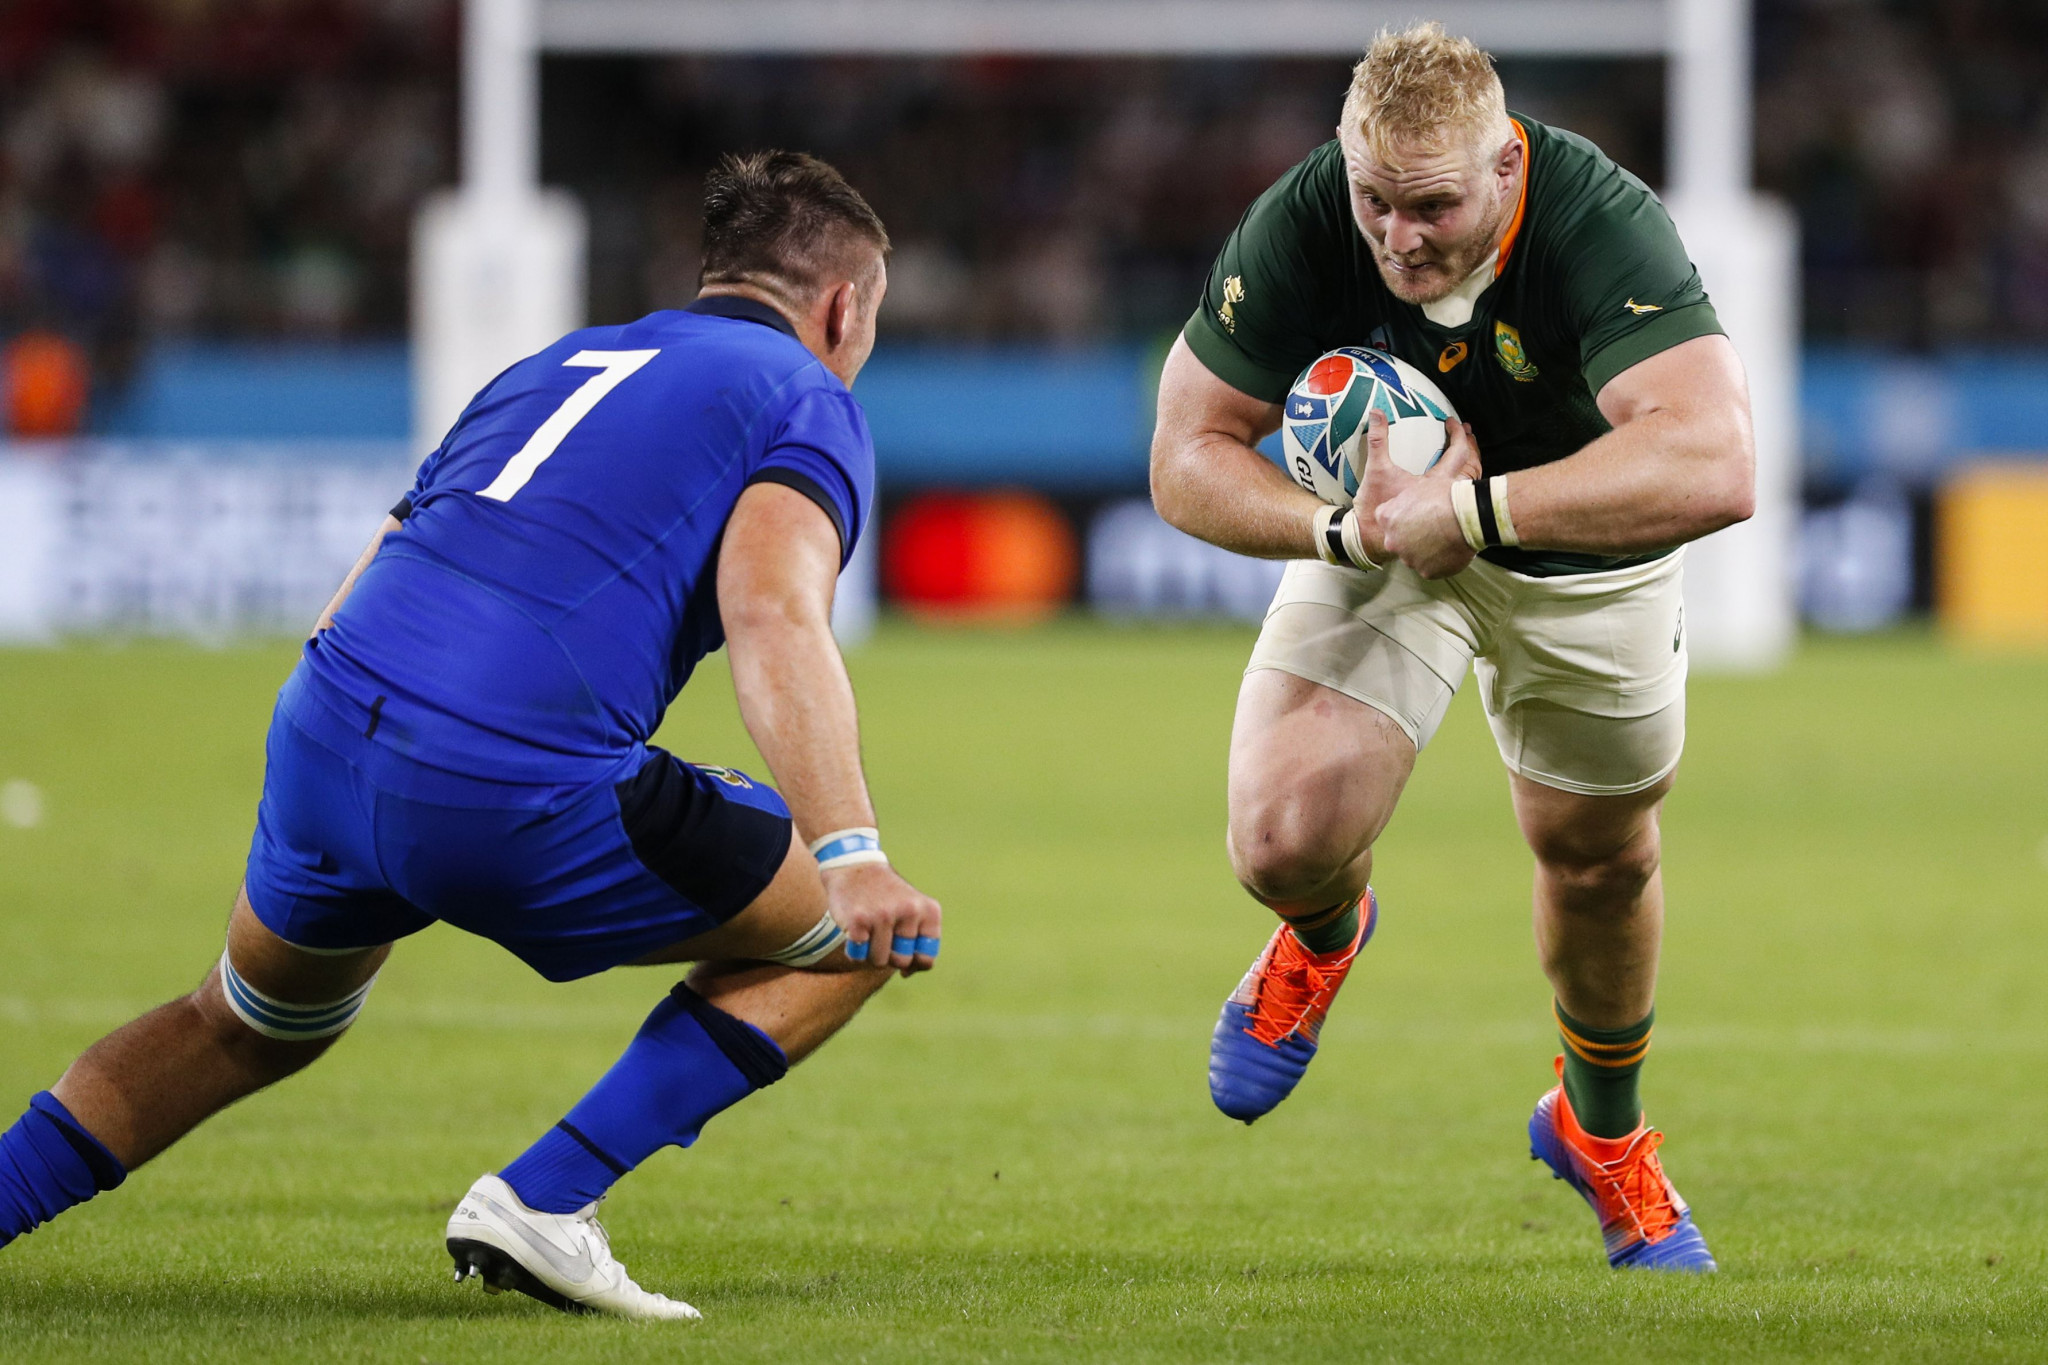 South African squad goes into isolation ahead of Lions tour due to COVID-19 cases